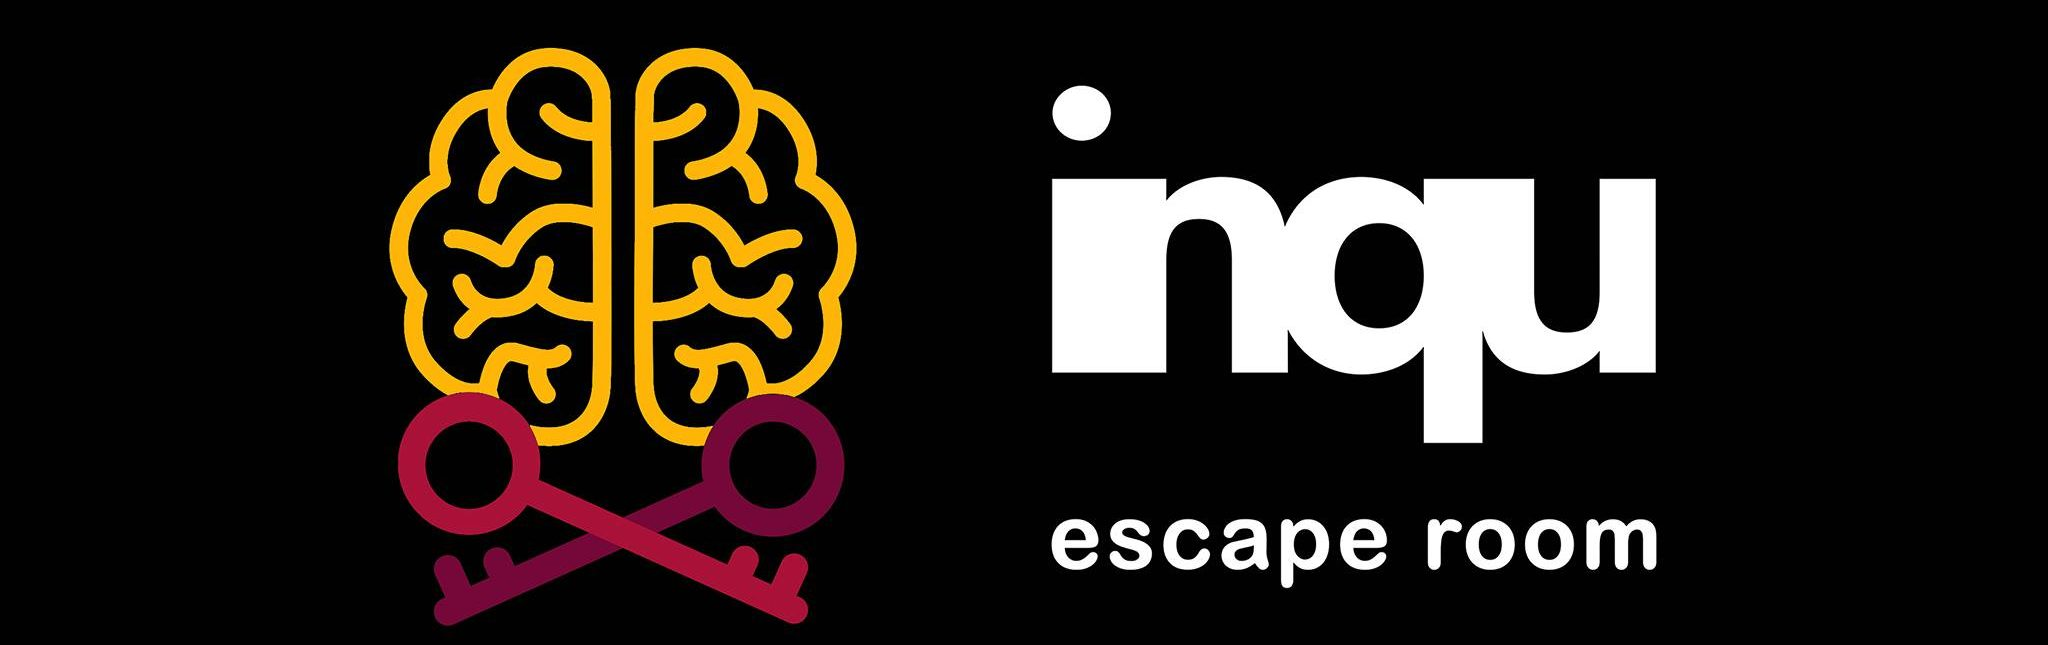 Inqu escape room